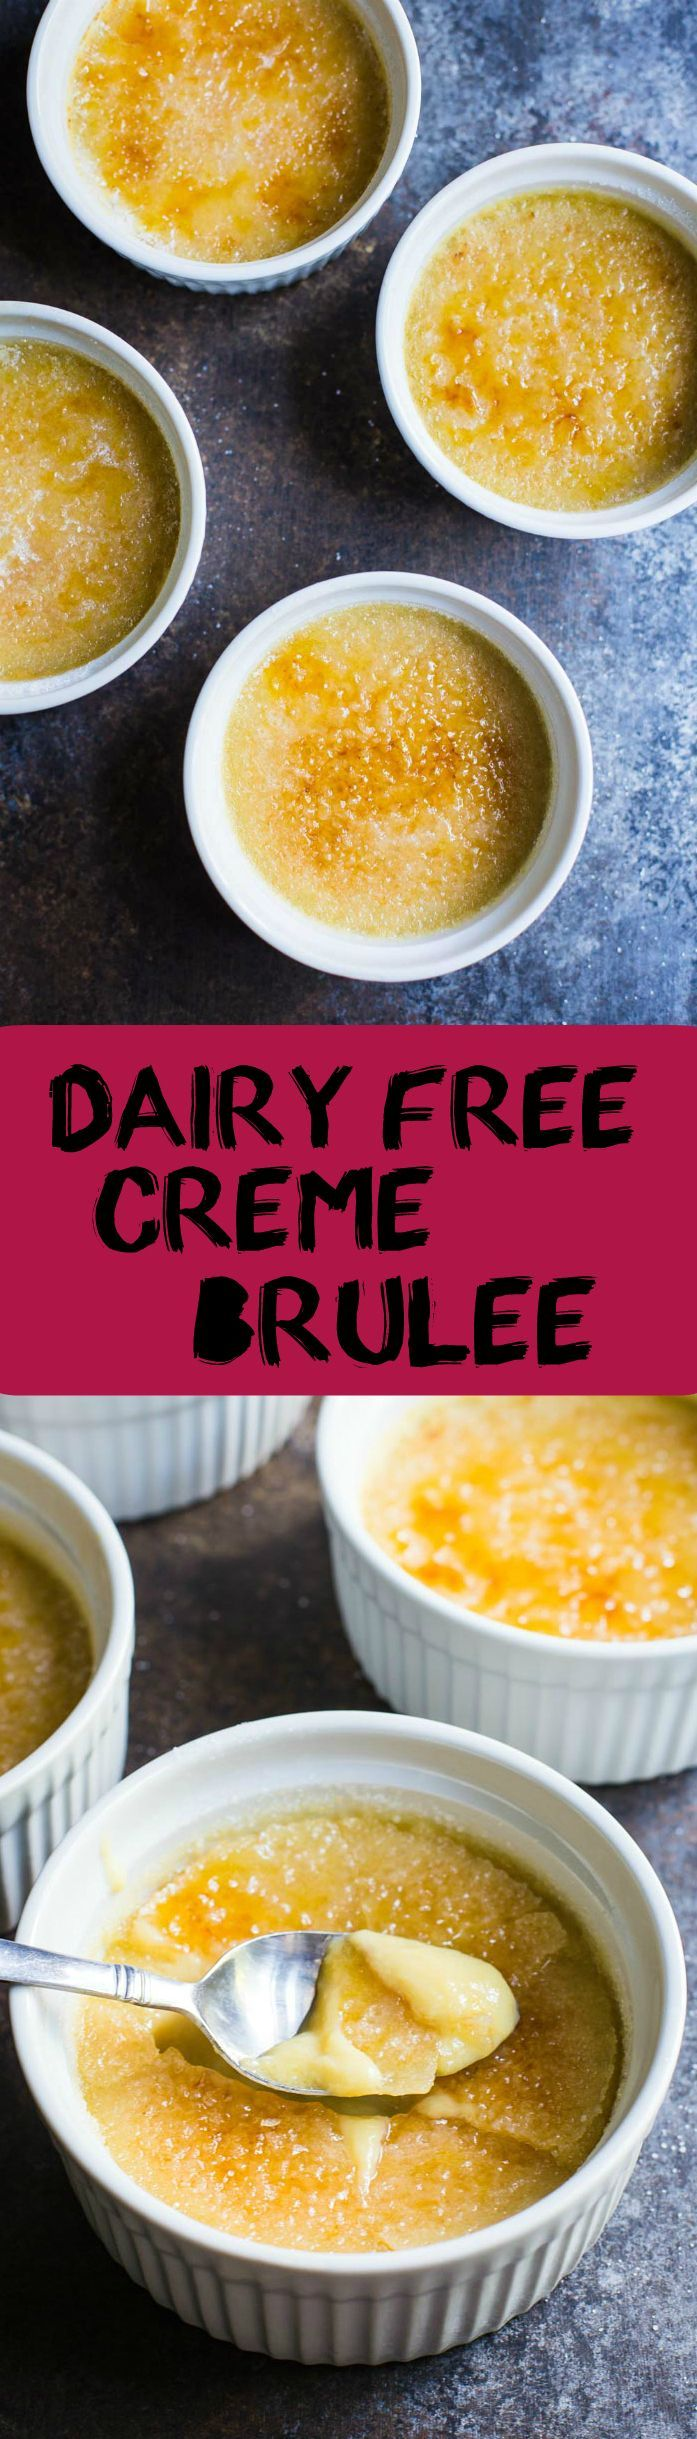 Dairy Free Creme Brulee- this recipe is made with coconut cream instead of heavy cream but it's still delicious and surprisingly easy to make at home!!